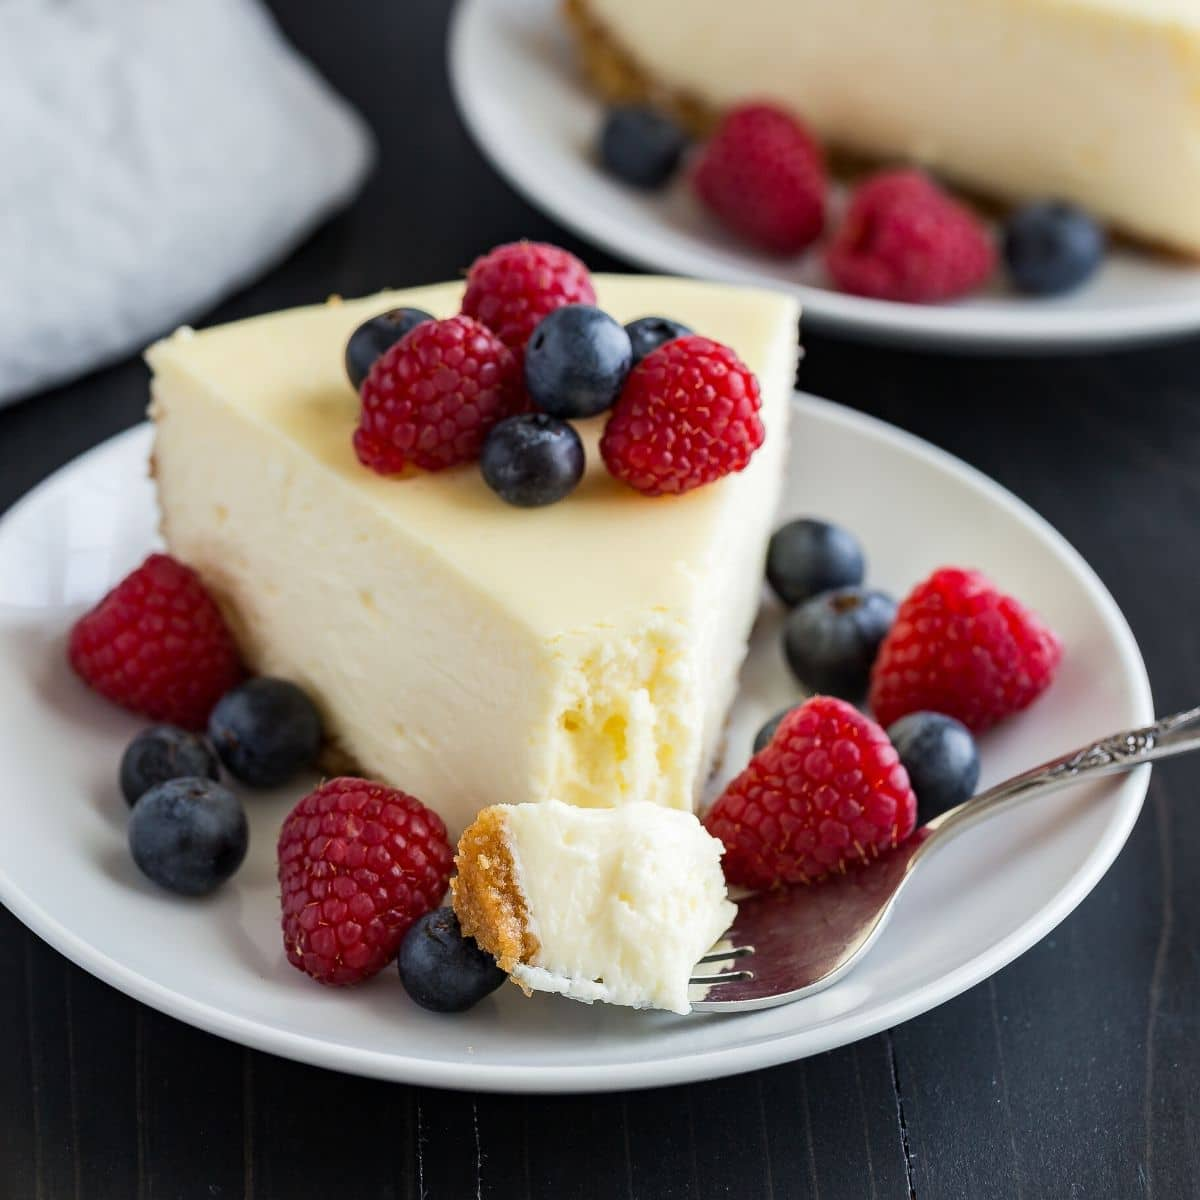 A slice of cheesecake topped with fresh berries and a fork taking out a bite.